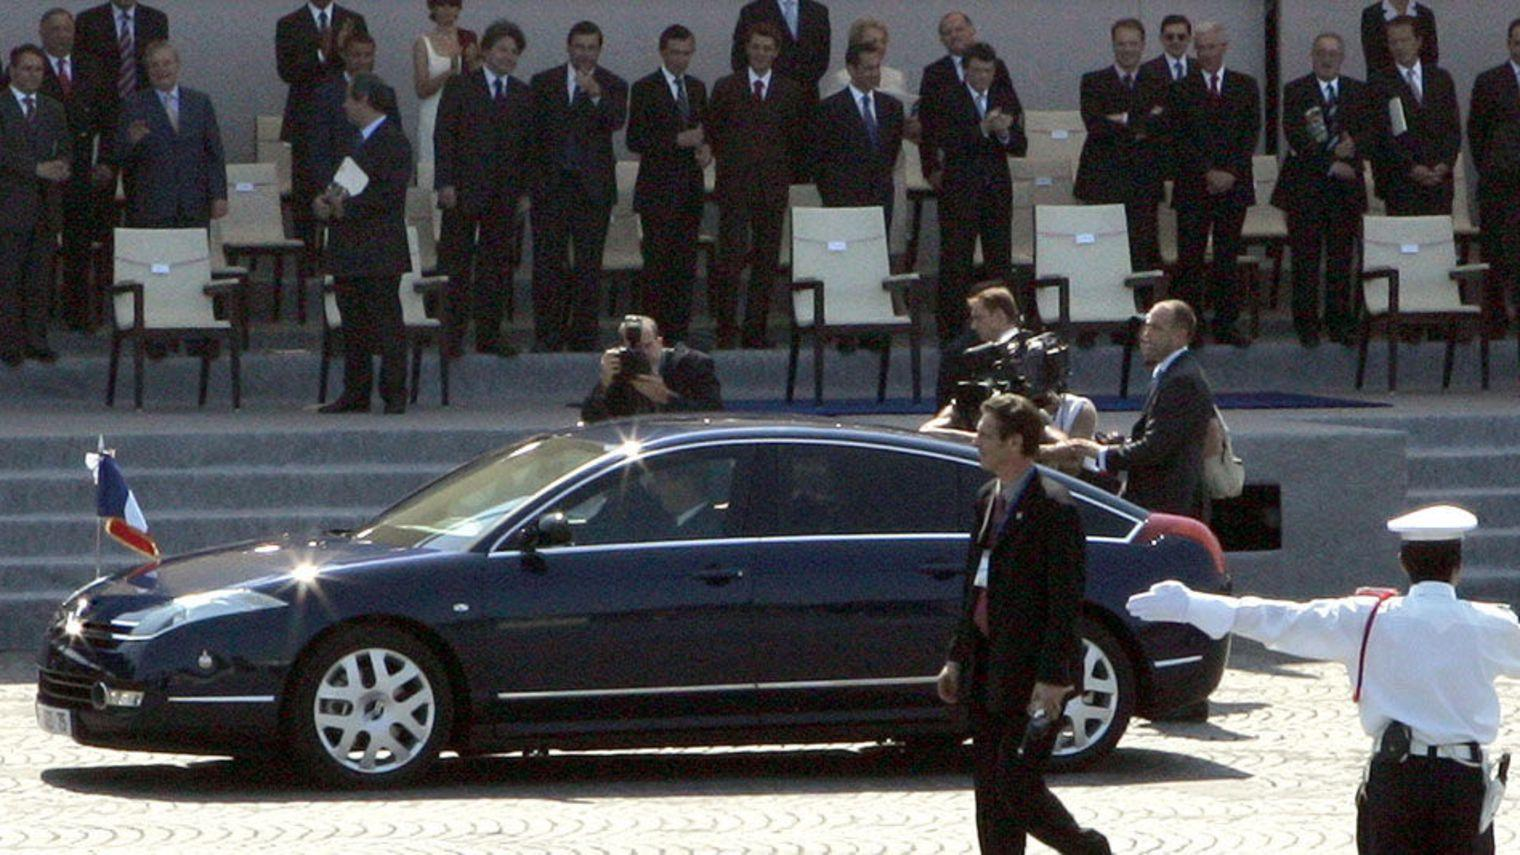 Jacques Chirac in a C6 on July 14th, 2005